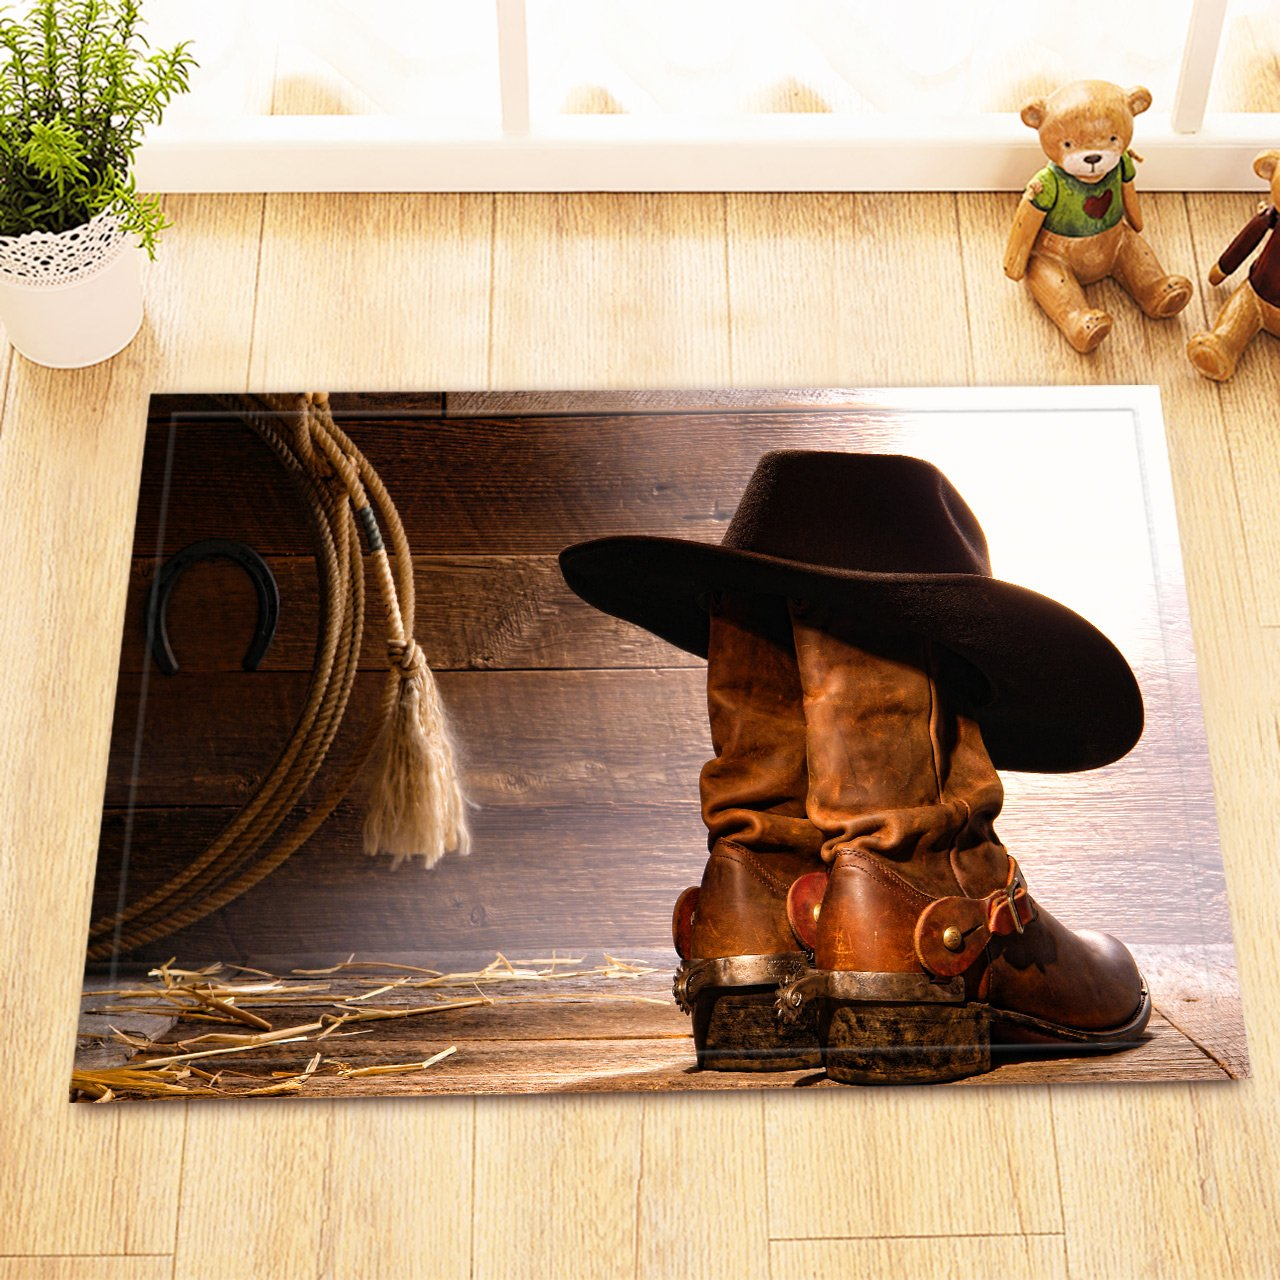 LB Western Cowboy Boot Hat Rustic Barn Wood Small Shower Carpet, Slip Proof Rubber Backing Microfiber Surface, Texas Country Theme Bathroom Rug 15 x 23 Inches